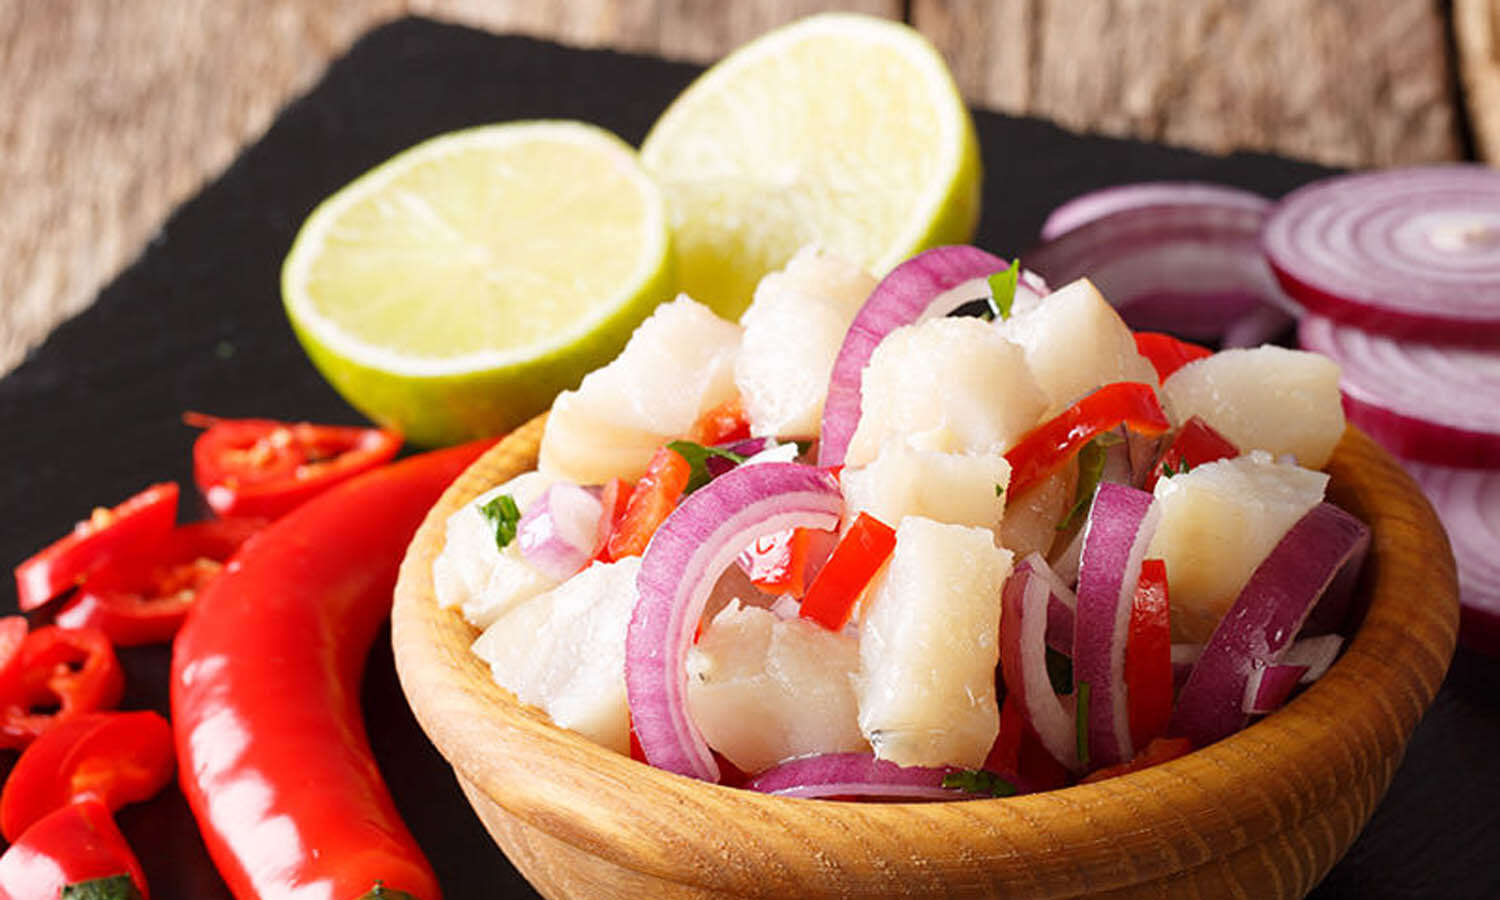 How to Prepare a Dominican Ceviche